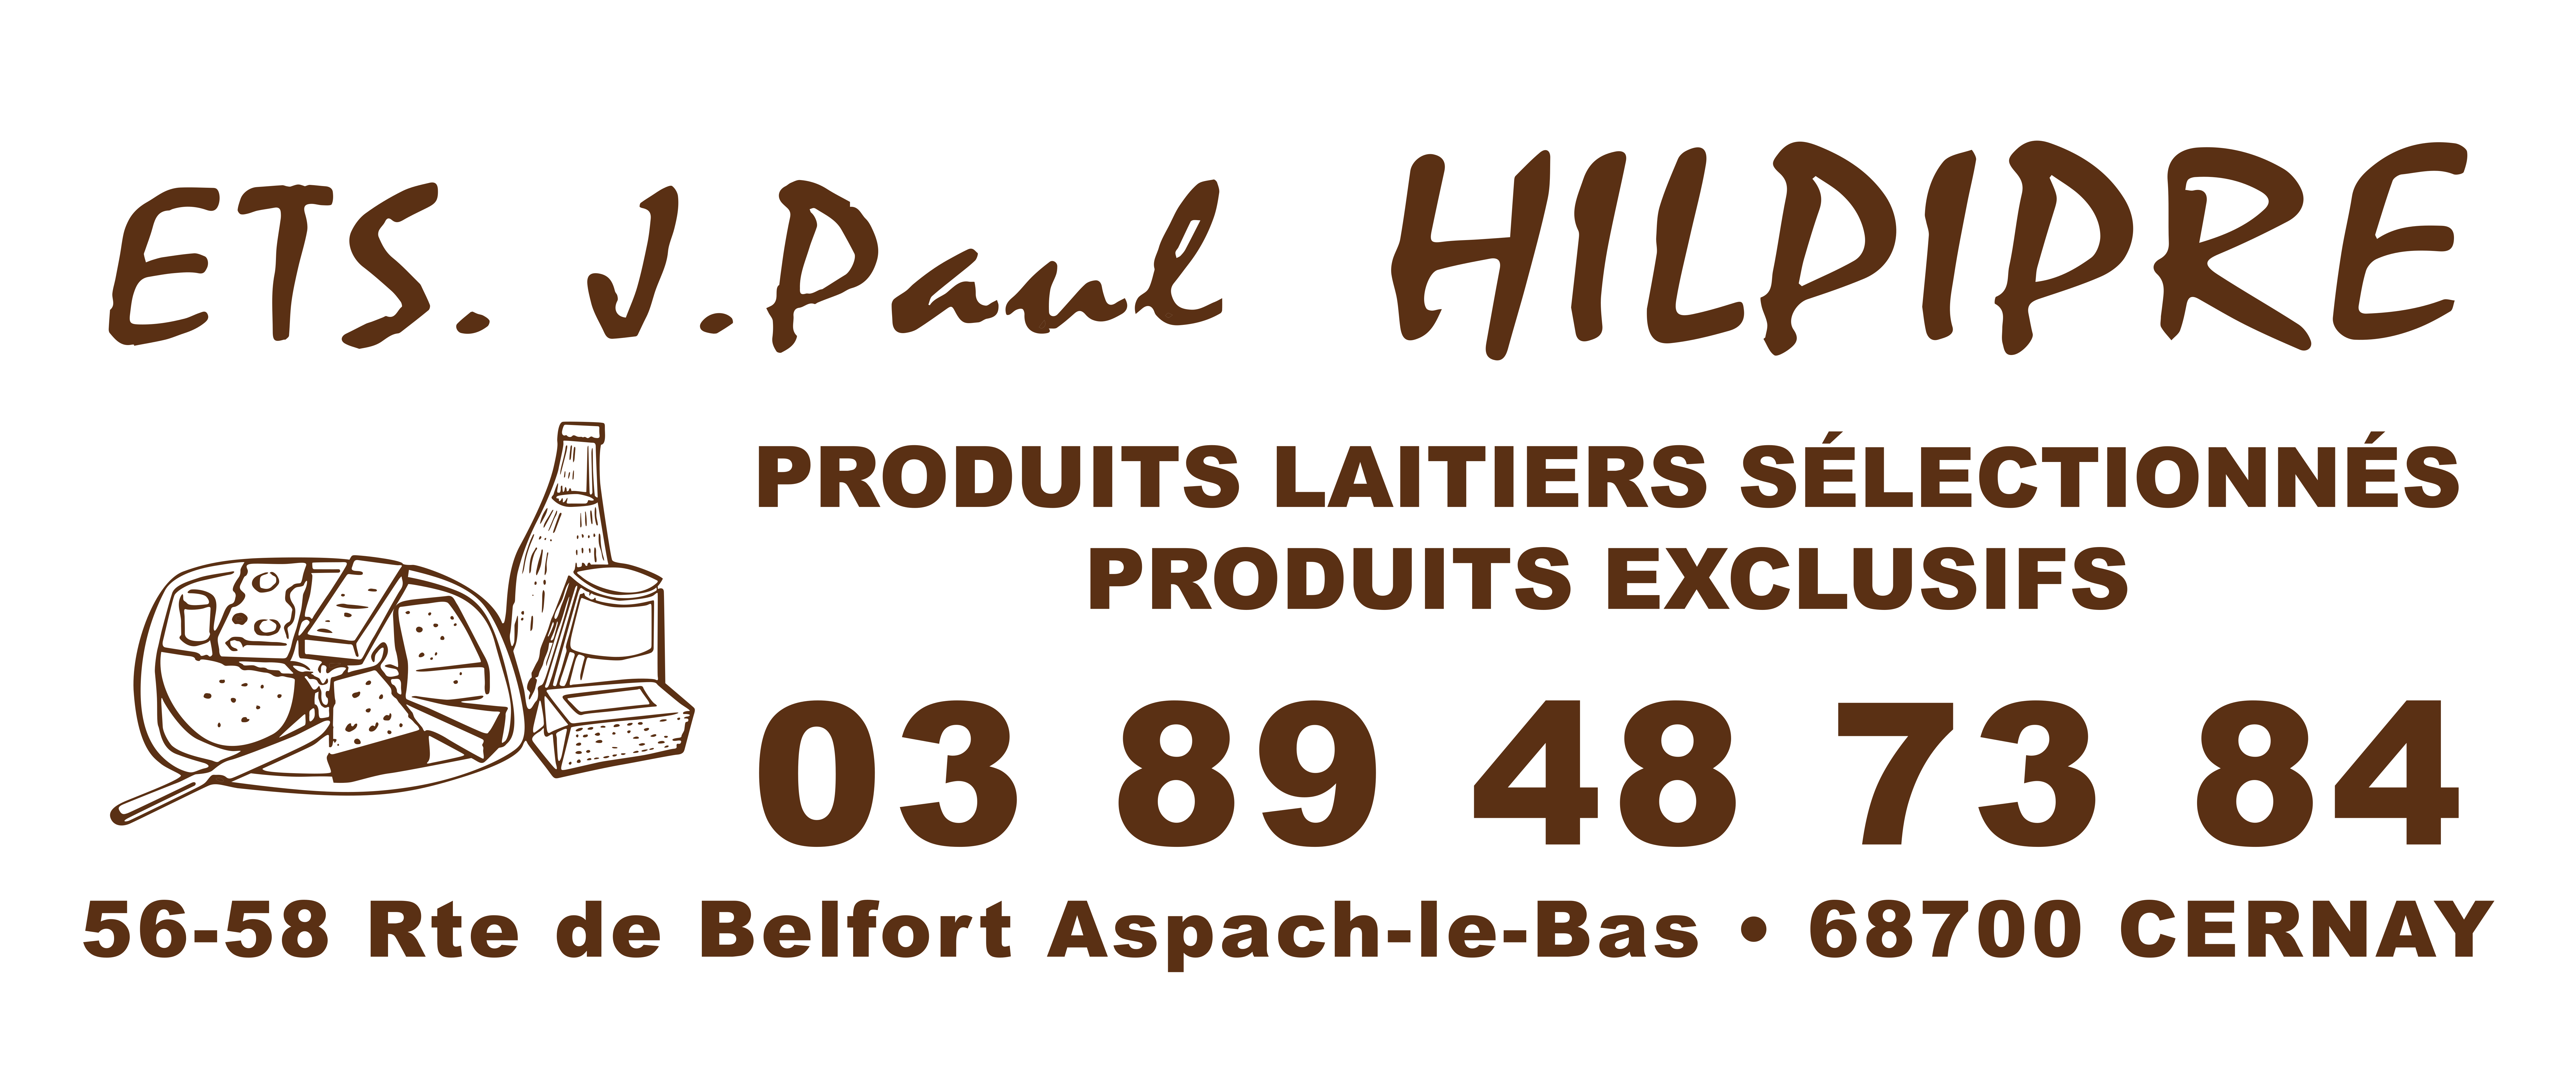 logo fromagerie hilpipre